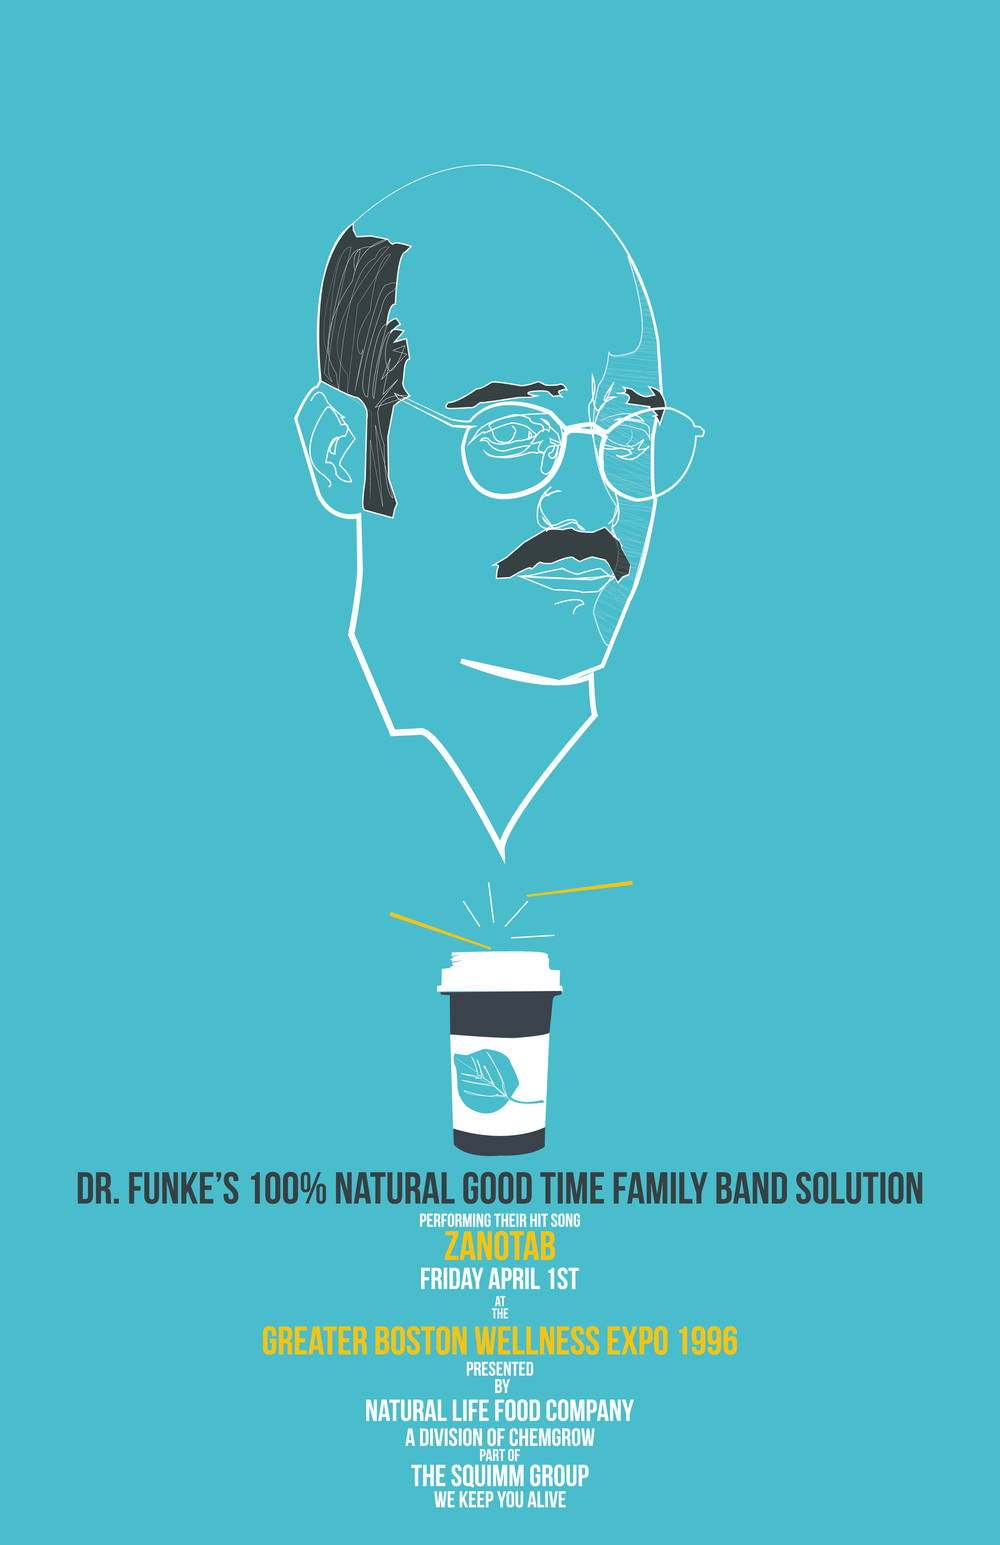 Tuned In: Dr Funke's 100% Natural Good Time Family Band Solution